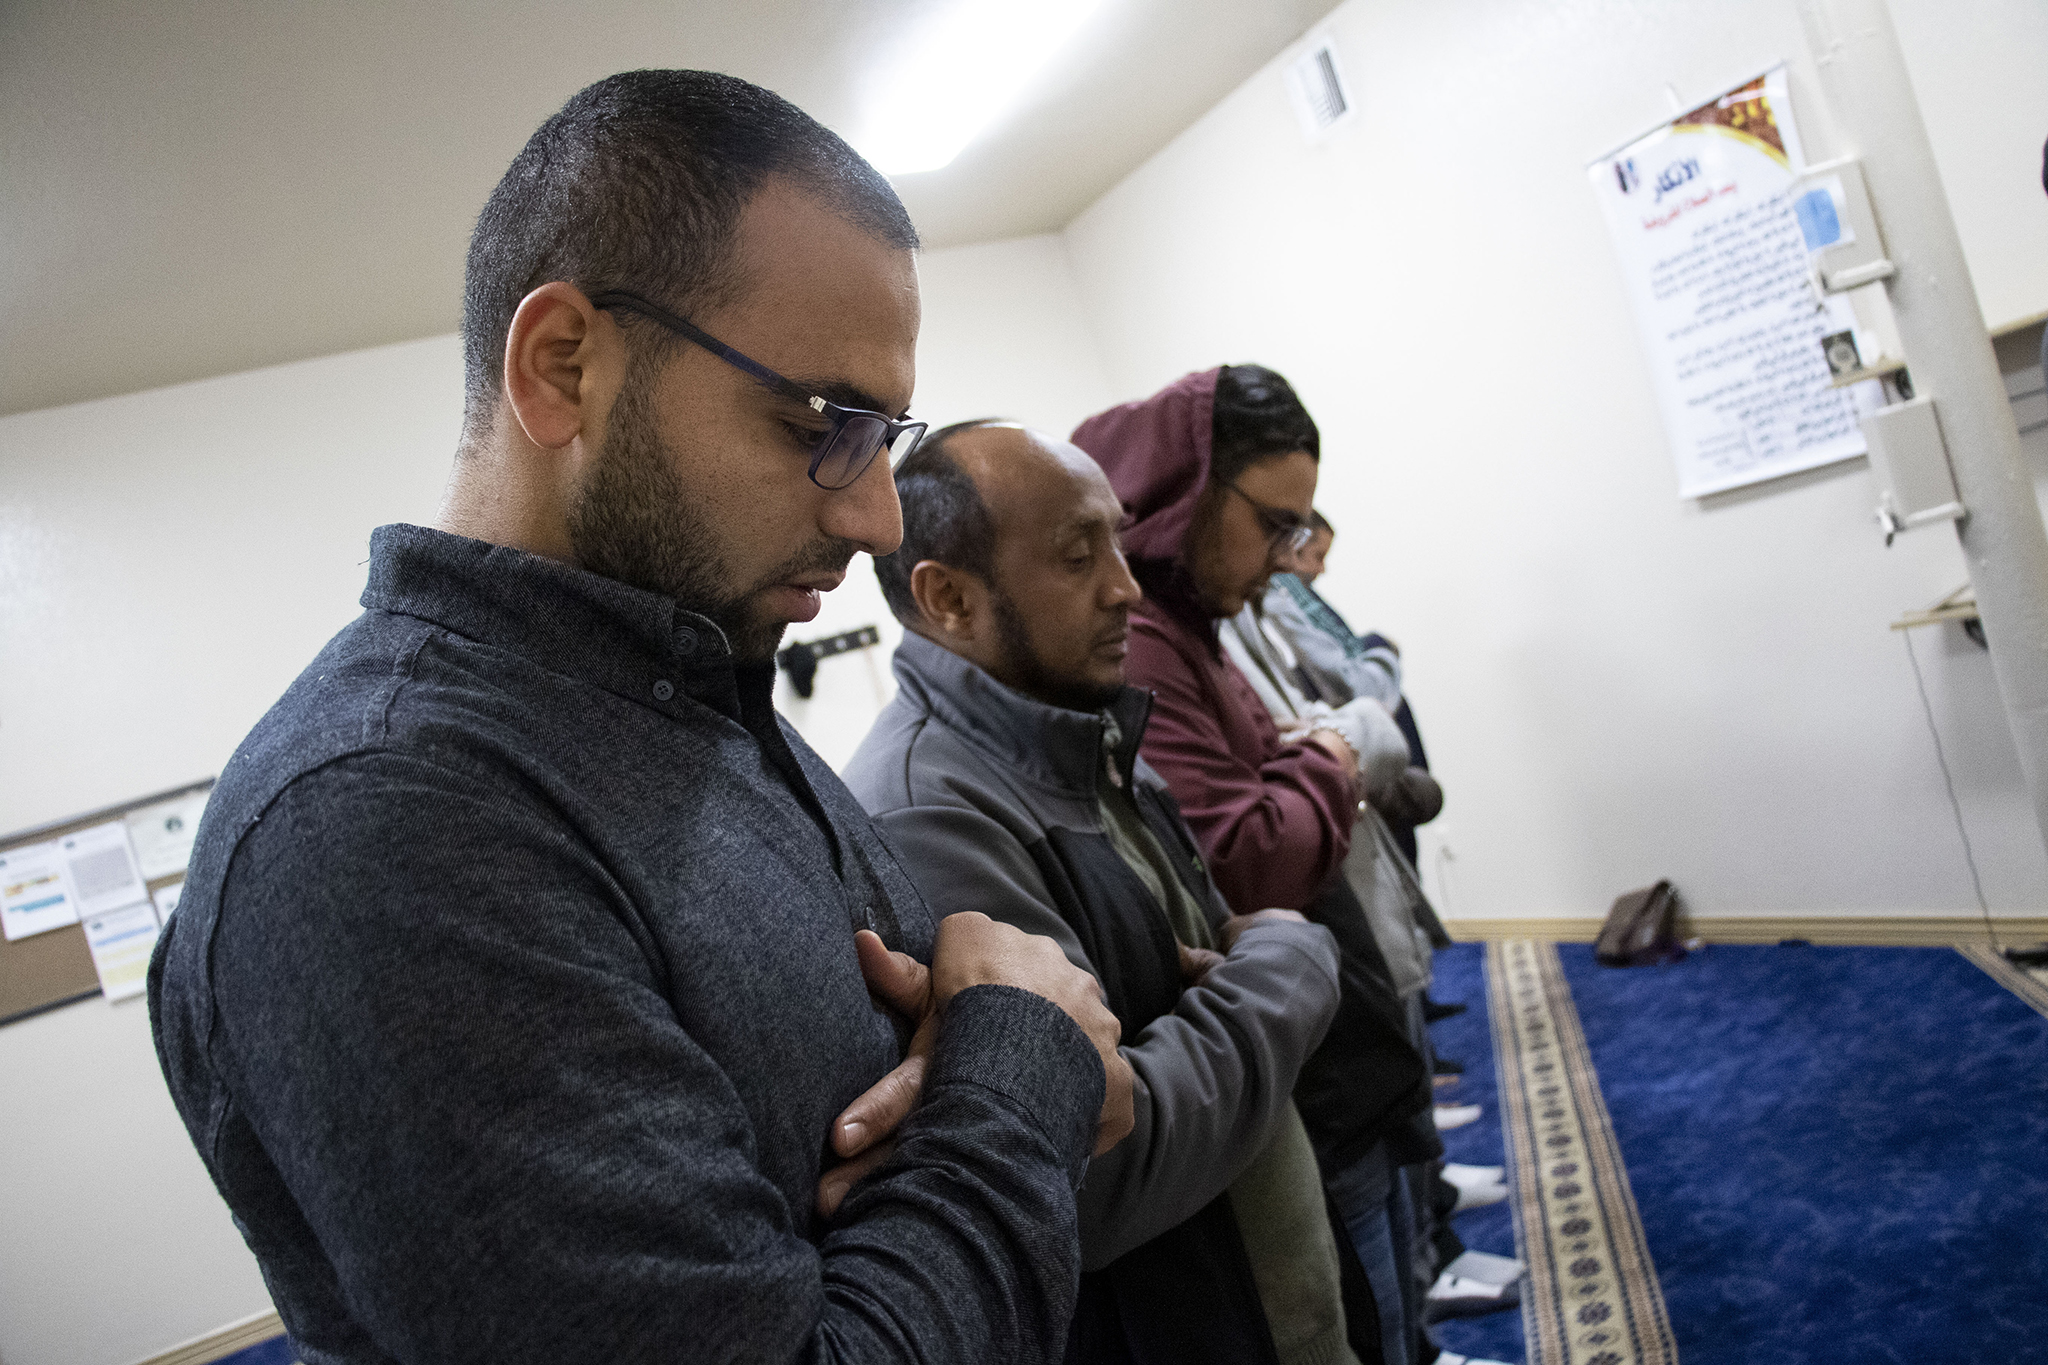 Imam Muhammad Kolila prays at the Downtown Denver Islamic Center. Nov. 14, 2019.